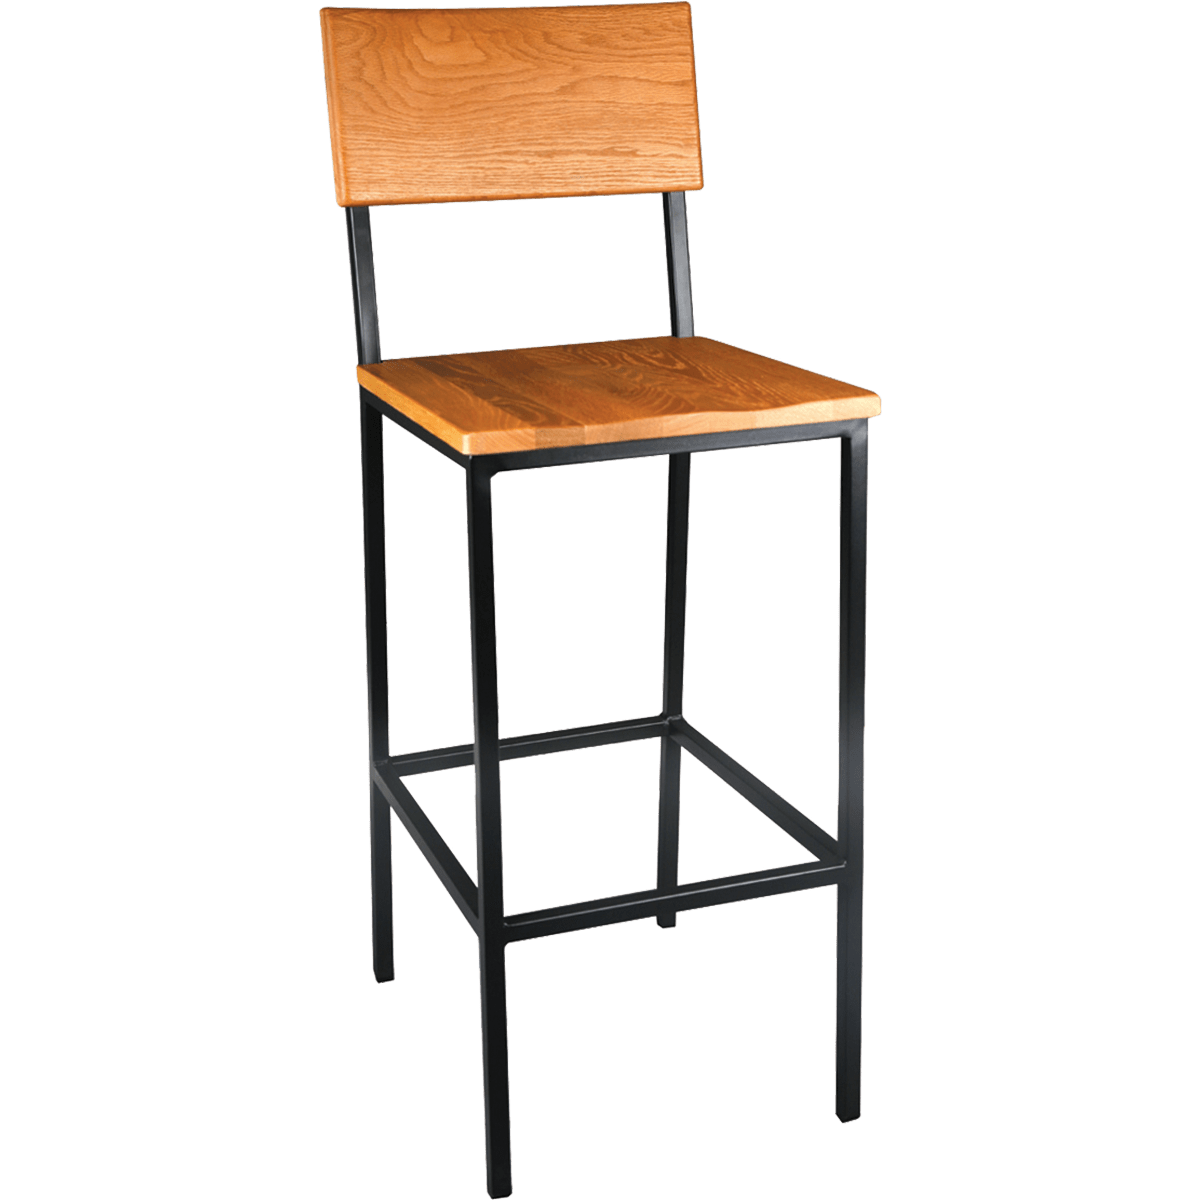 Wood And Metal Bar Stools Industrial Bar Stools Millennium Seating Usa